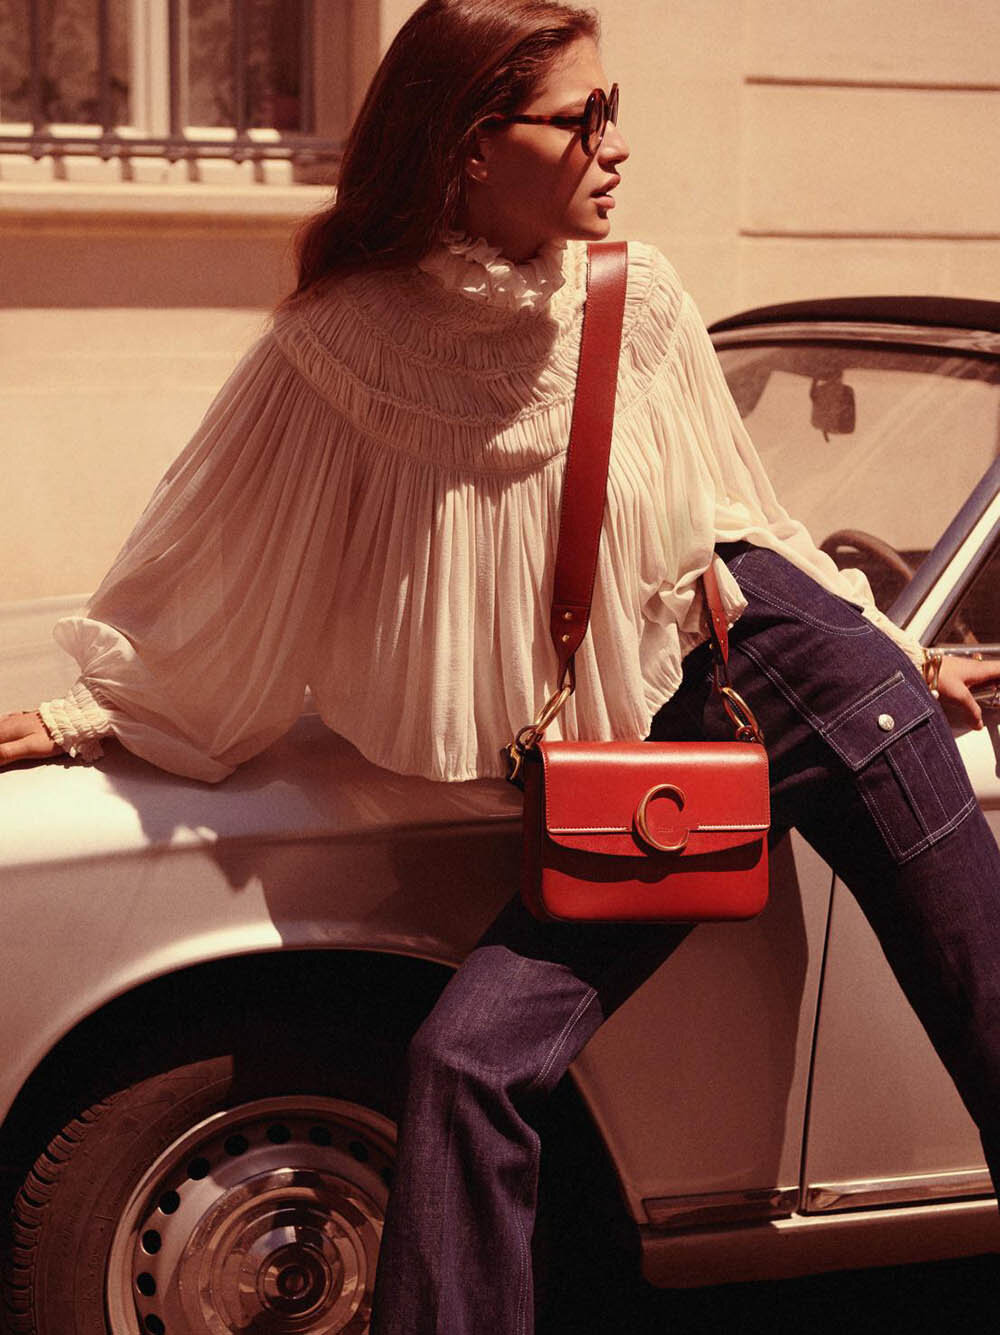 Faretta-Radic-by-Mel-Bles-for-Vogue-Paris-September-2019-9.jpg